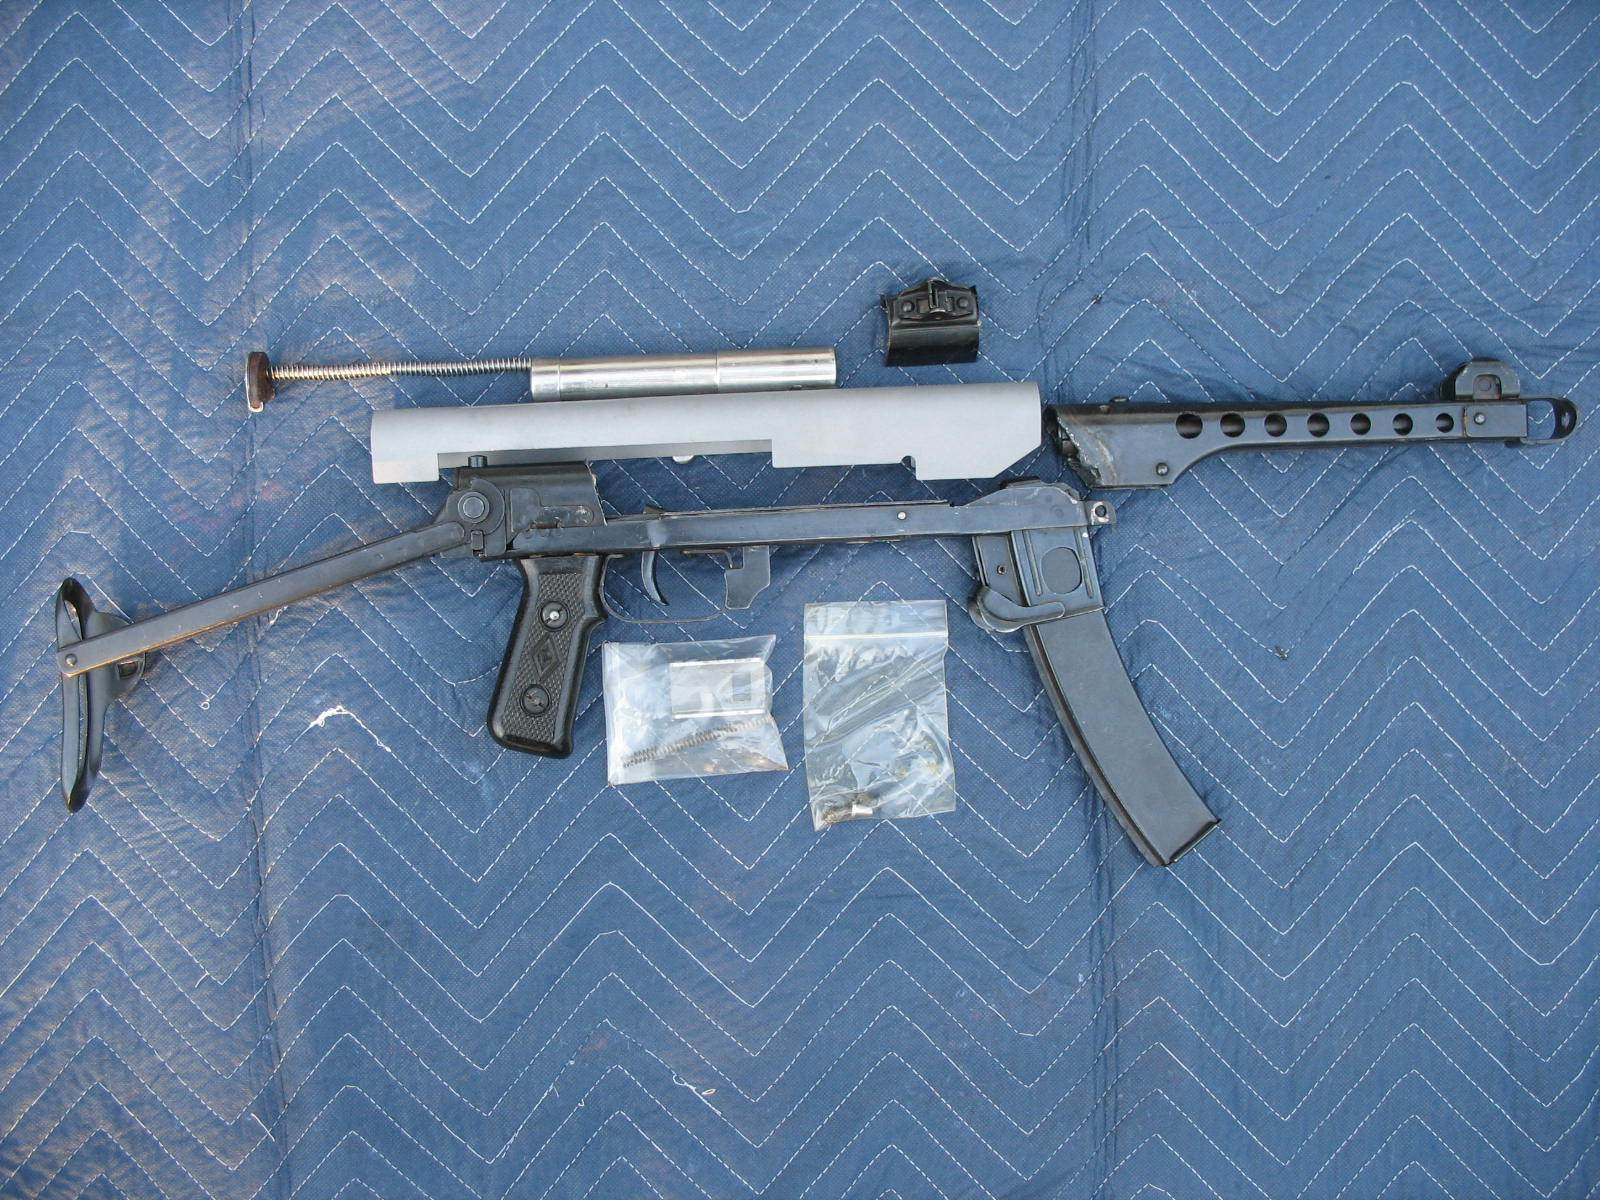 WTS: PPS43 Parts Kit with Original Barrel & Trunion (Pic's)